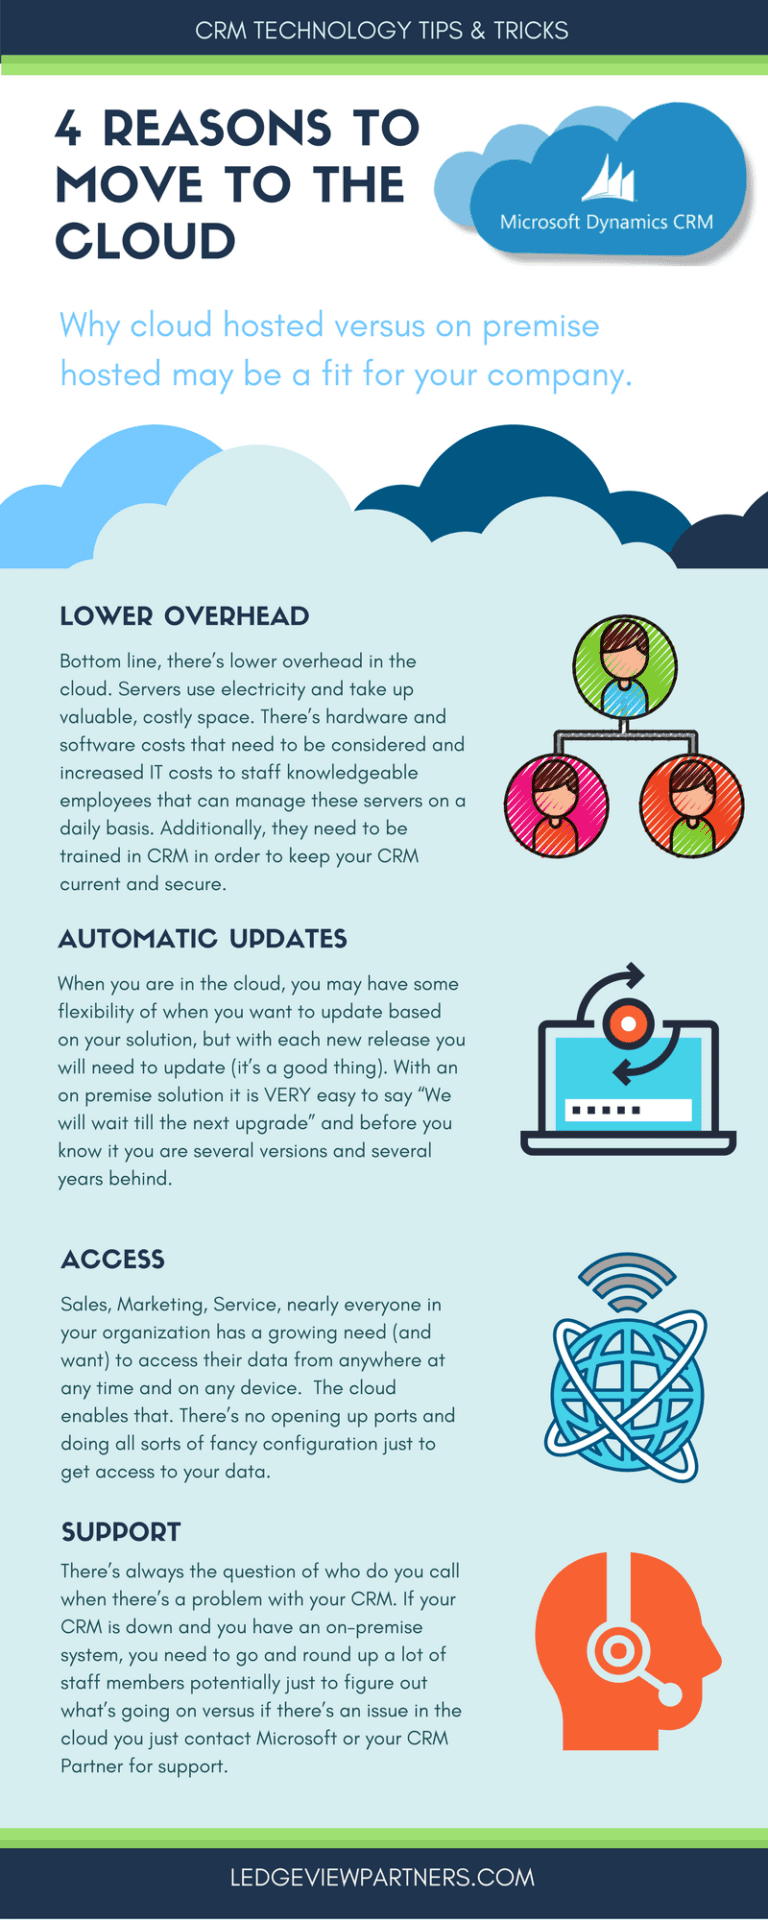 Ledgeview Partners Infographic